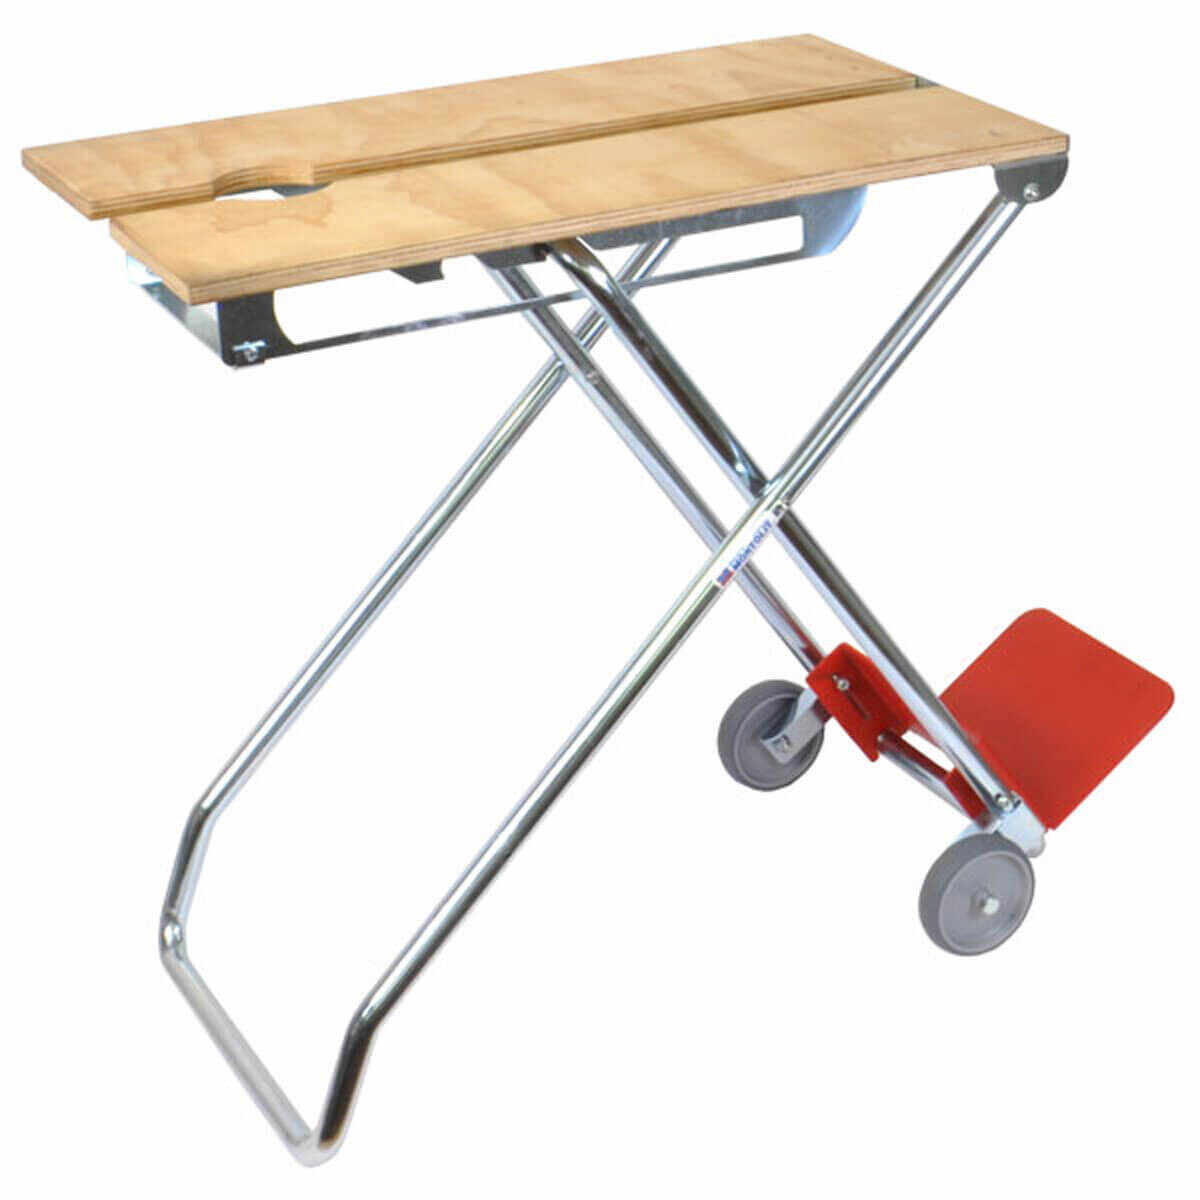 Montolit X-Works Workbench for Tile Layers, job site work bench